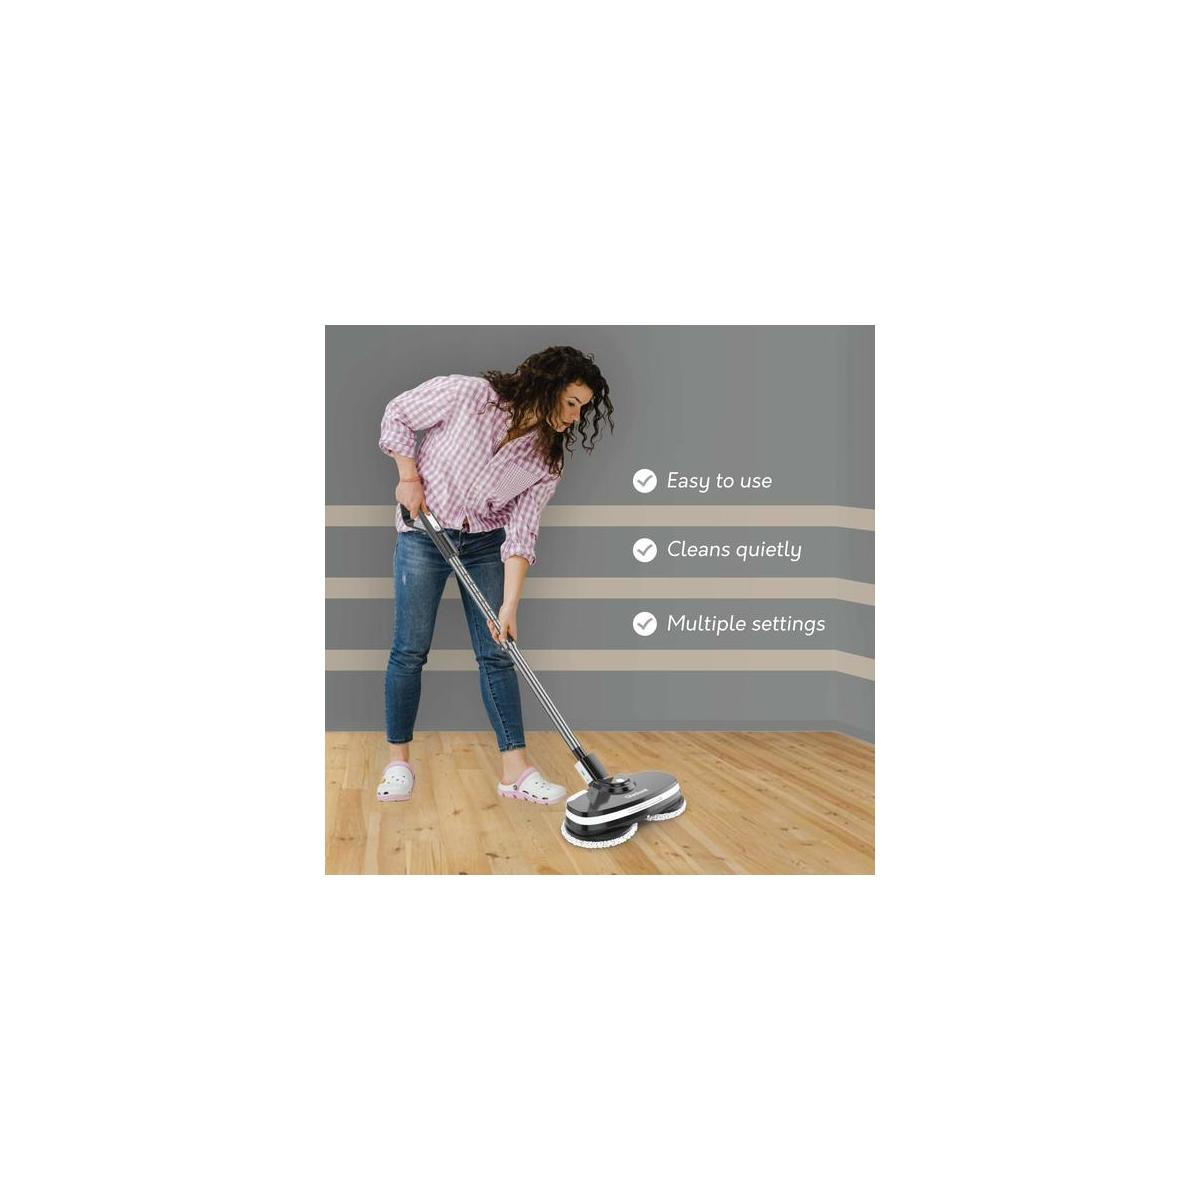 Gladwell Cordless Electric Mop - 3 in 1 Spinner, Scrubber, Waxer Quiet, Powerful Cleaner Spin Scrubber & Buffer, Polisher for Hard Wood, Tile, Vinyl, Marble, Laminate Floor - 1 Year Warranty - black